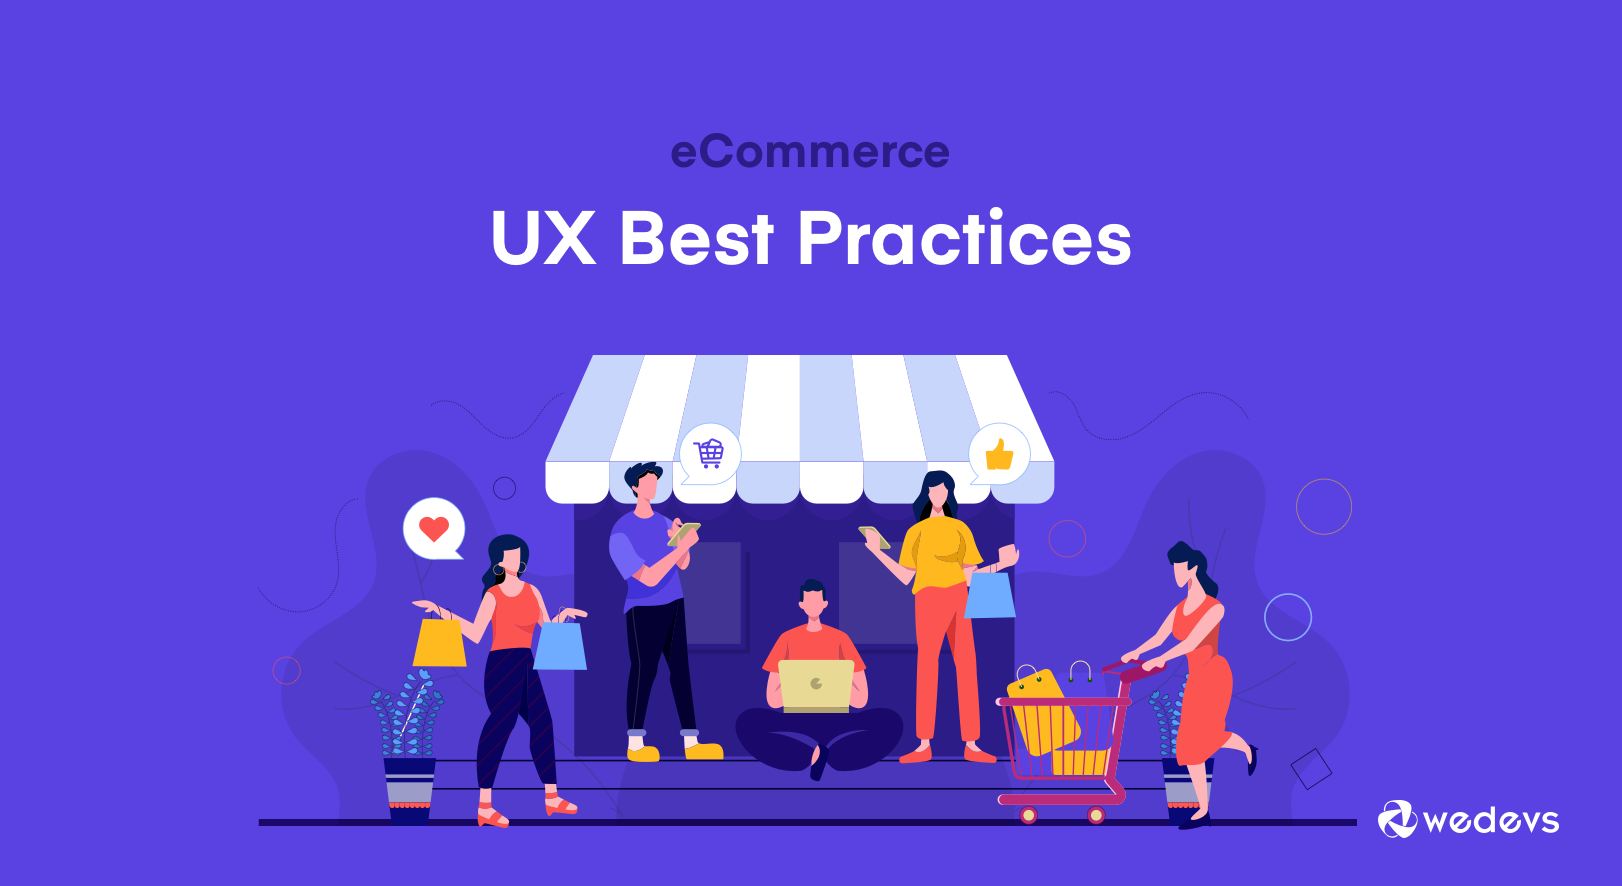 10 UX Best Practices to Boost Your eCommerce Sales